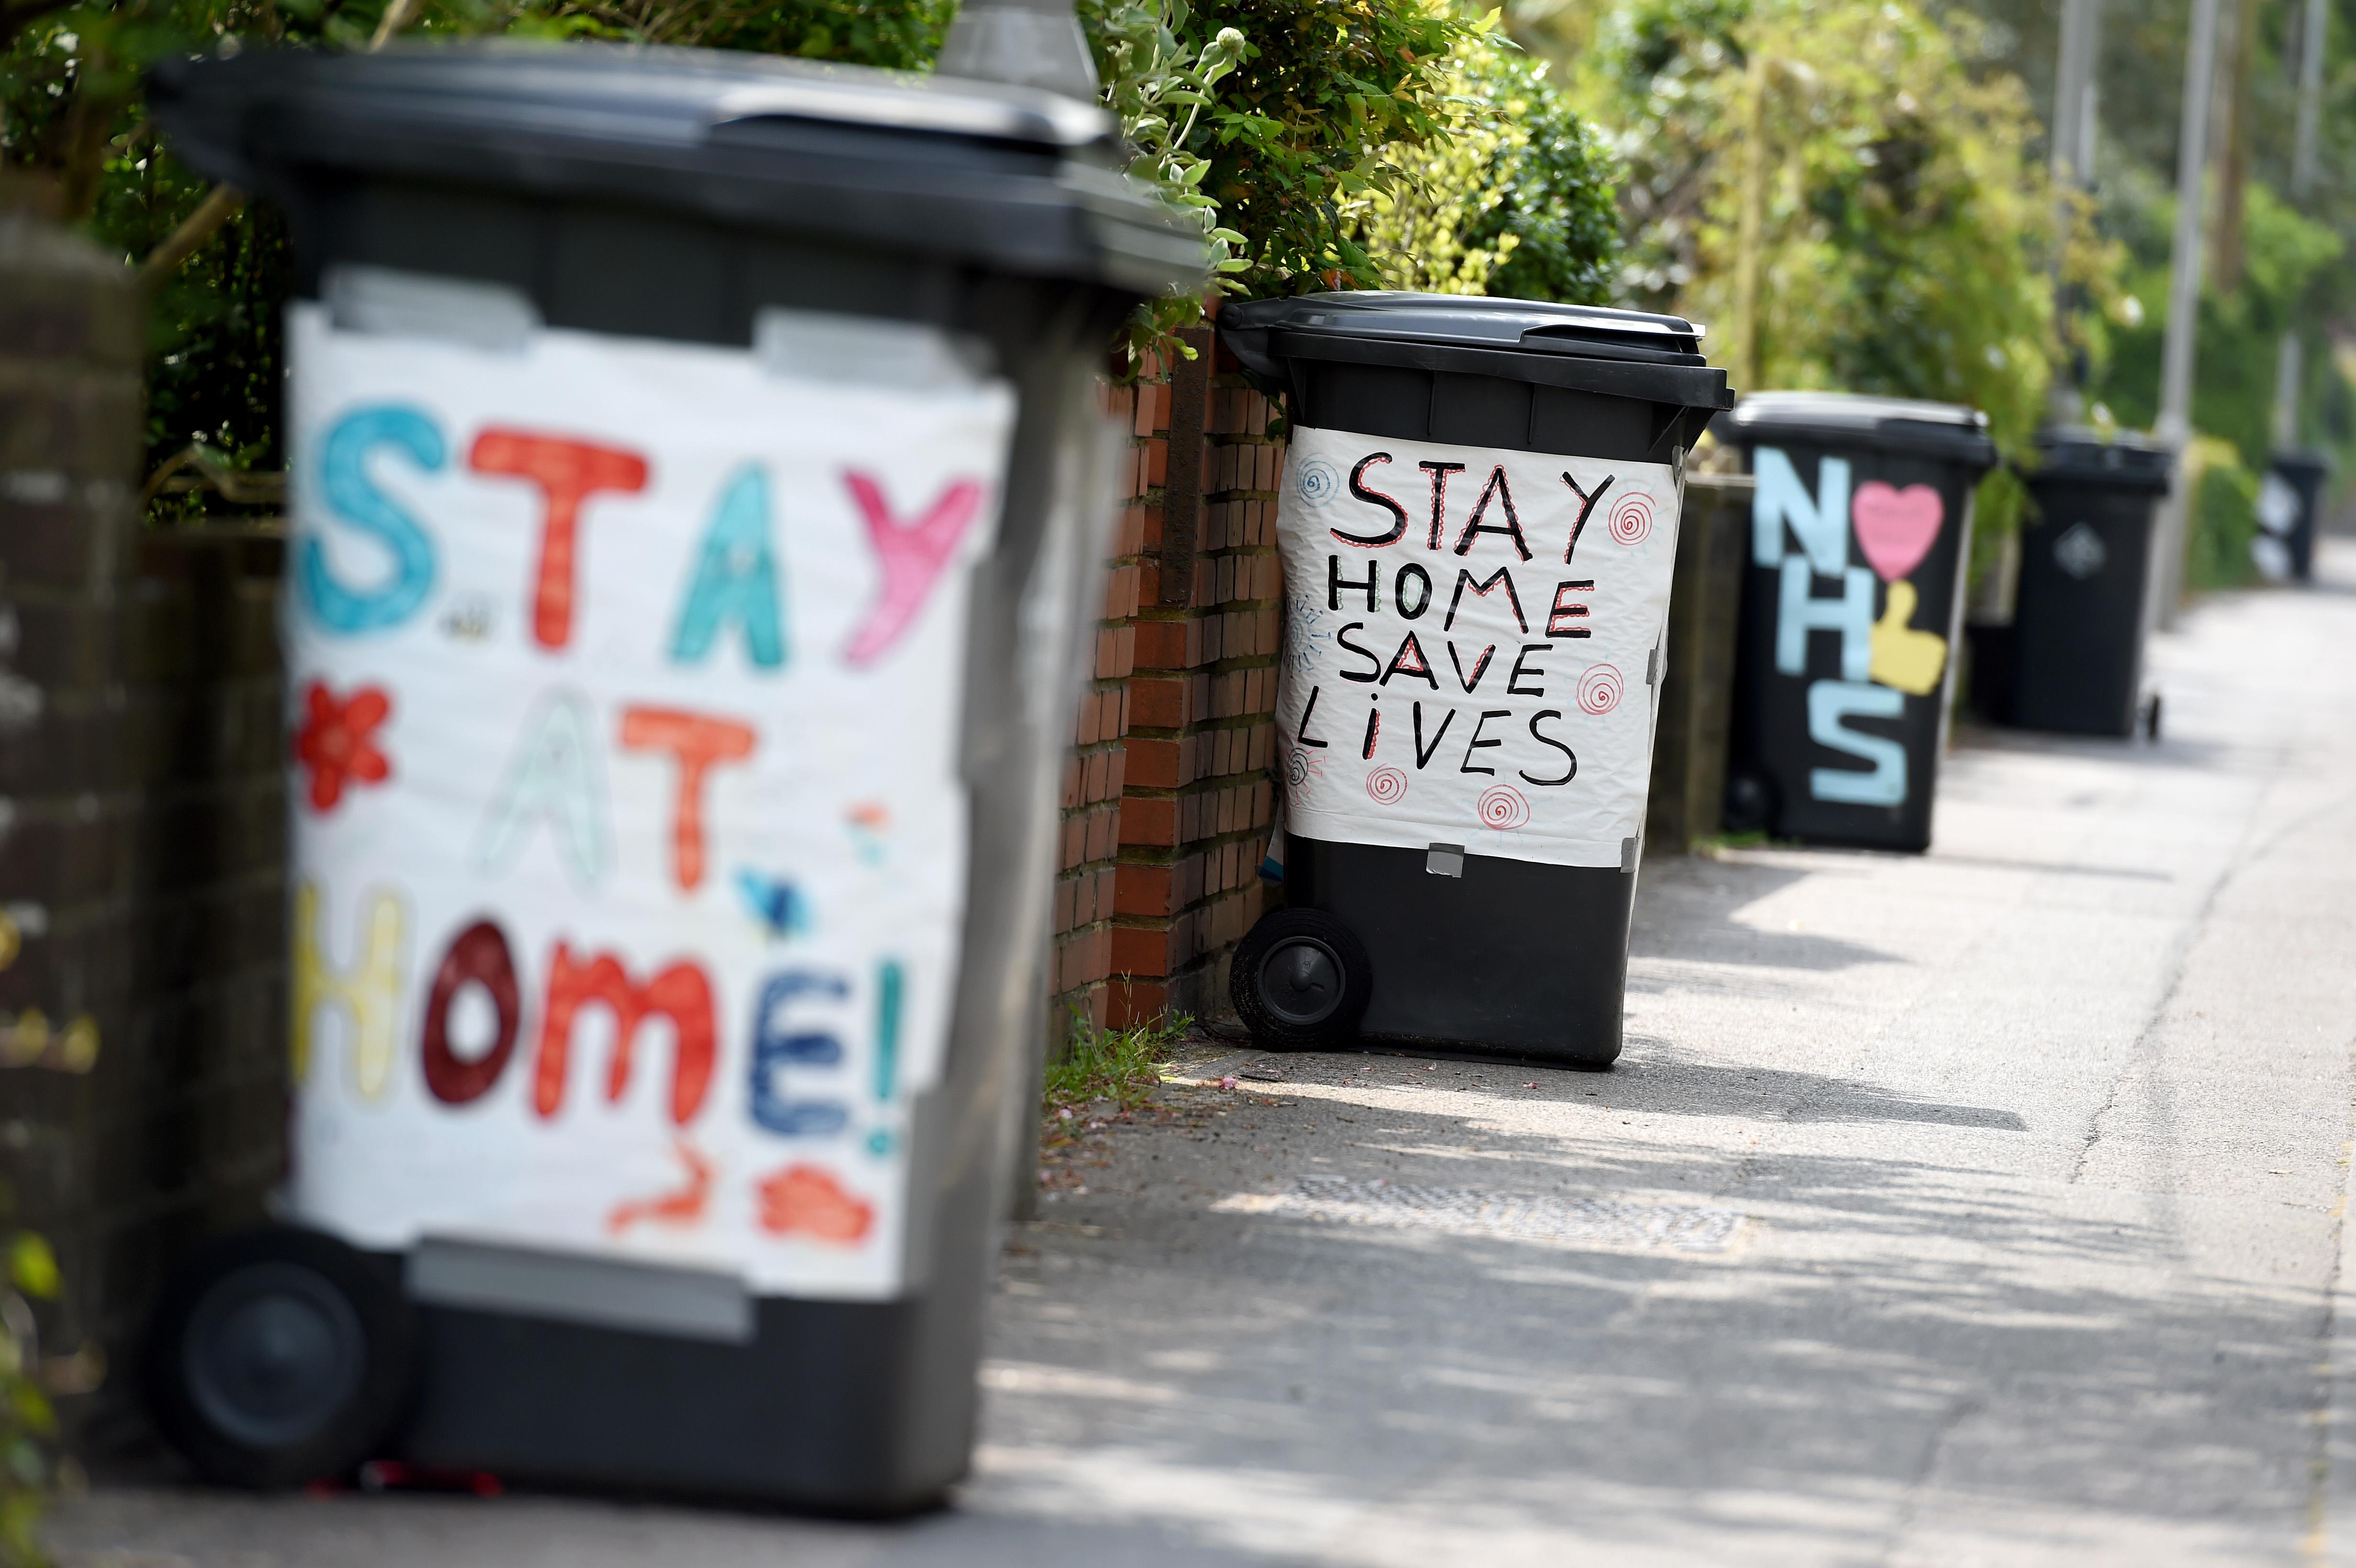 POOLE, ENGLAND - APRIL 27: Decorated rubbish bins are seen showing support for the NHS and staying at home on April 27, 2020 in Poole, United Kingdom. British Prime Minister Boris Johnson, who returned to Downing Street this week after recovering from Covid-19, said the country needed to continue its lockdown measures to avoid a second spike in infections. (Photo by Finnbarr Webster/Getty Images)